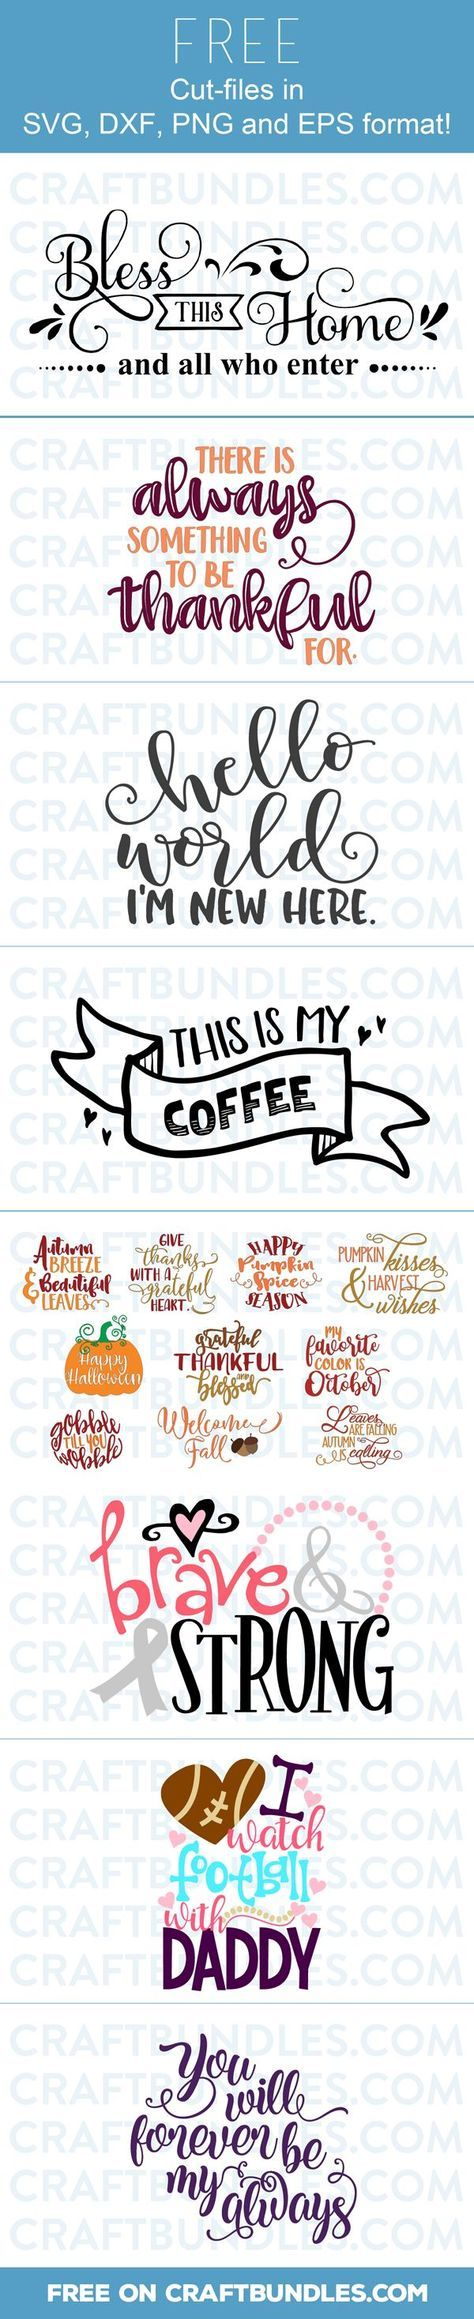 best stationary images on pinterest cards creative and invitations